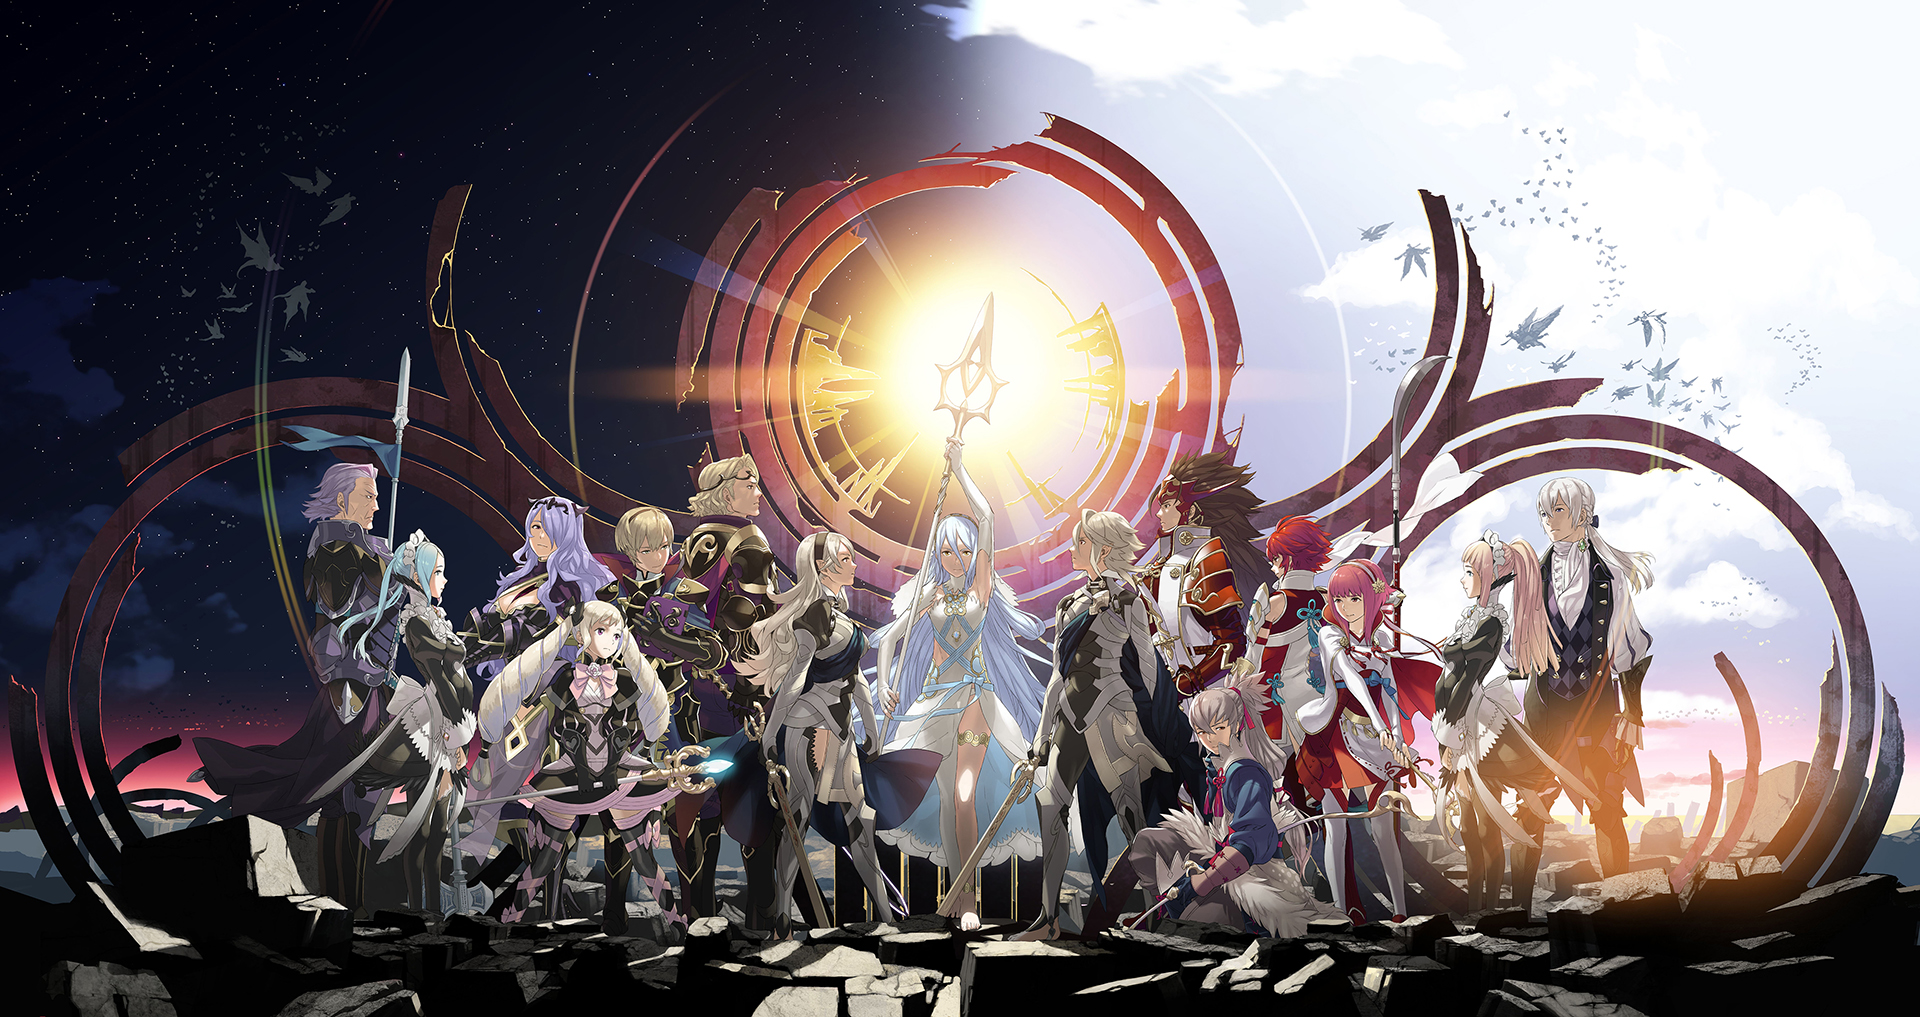 Fire Emblem Fates y Tokyo Mirage Sessions #FE (Audioanálisis) <br> <span style='color:#f96d5a;font-size:14px;font-weight: lighter;'>Hello Japan! Konichiwa World!</span>